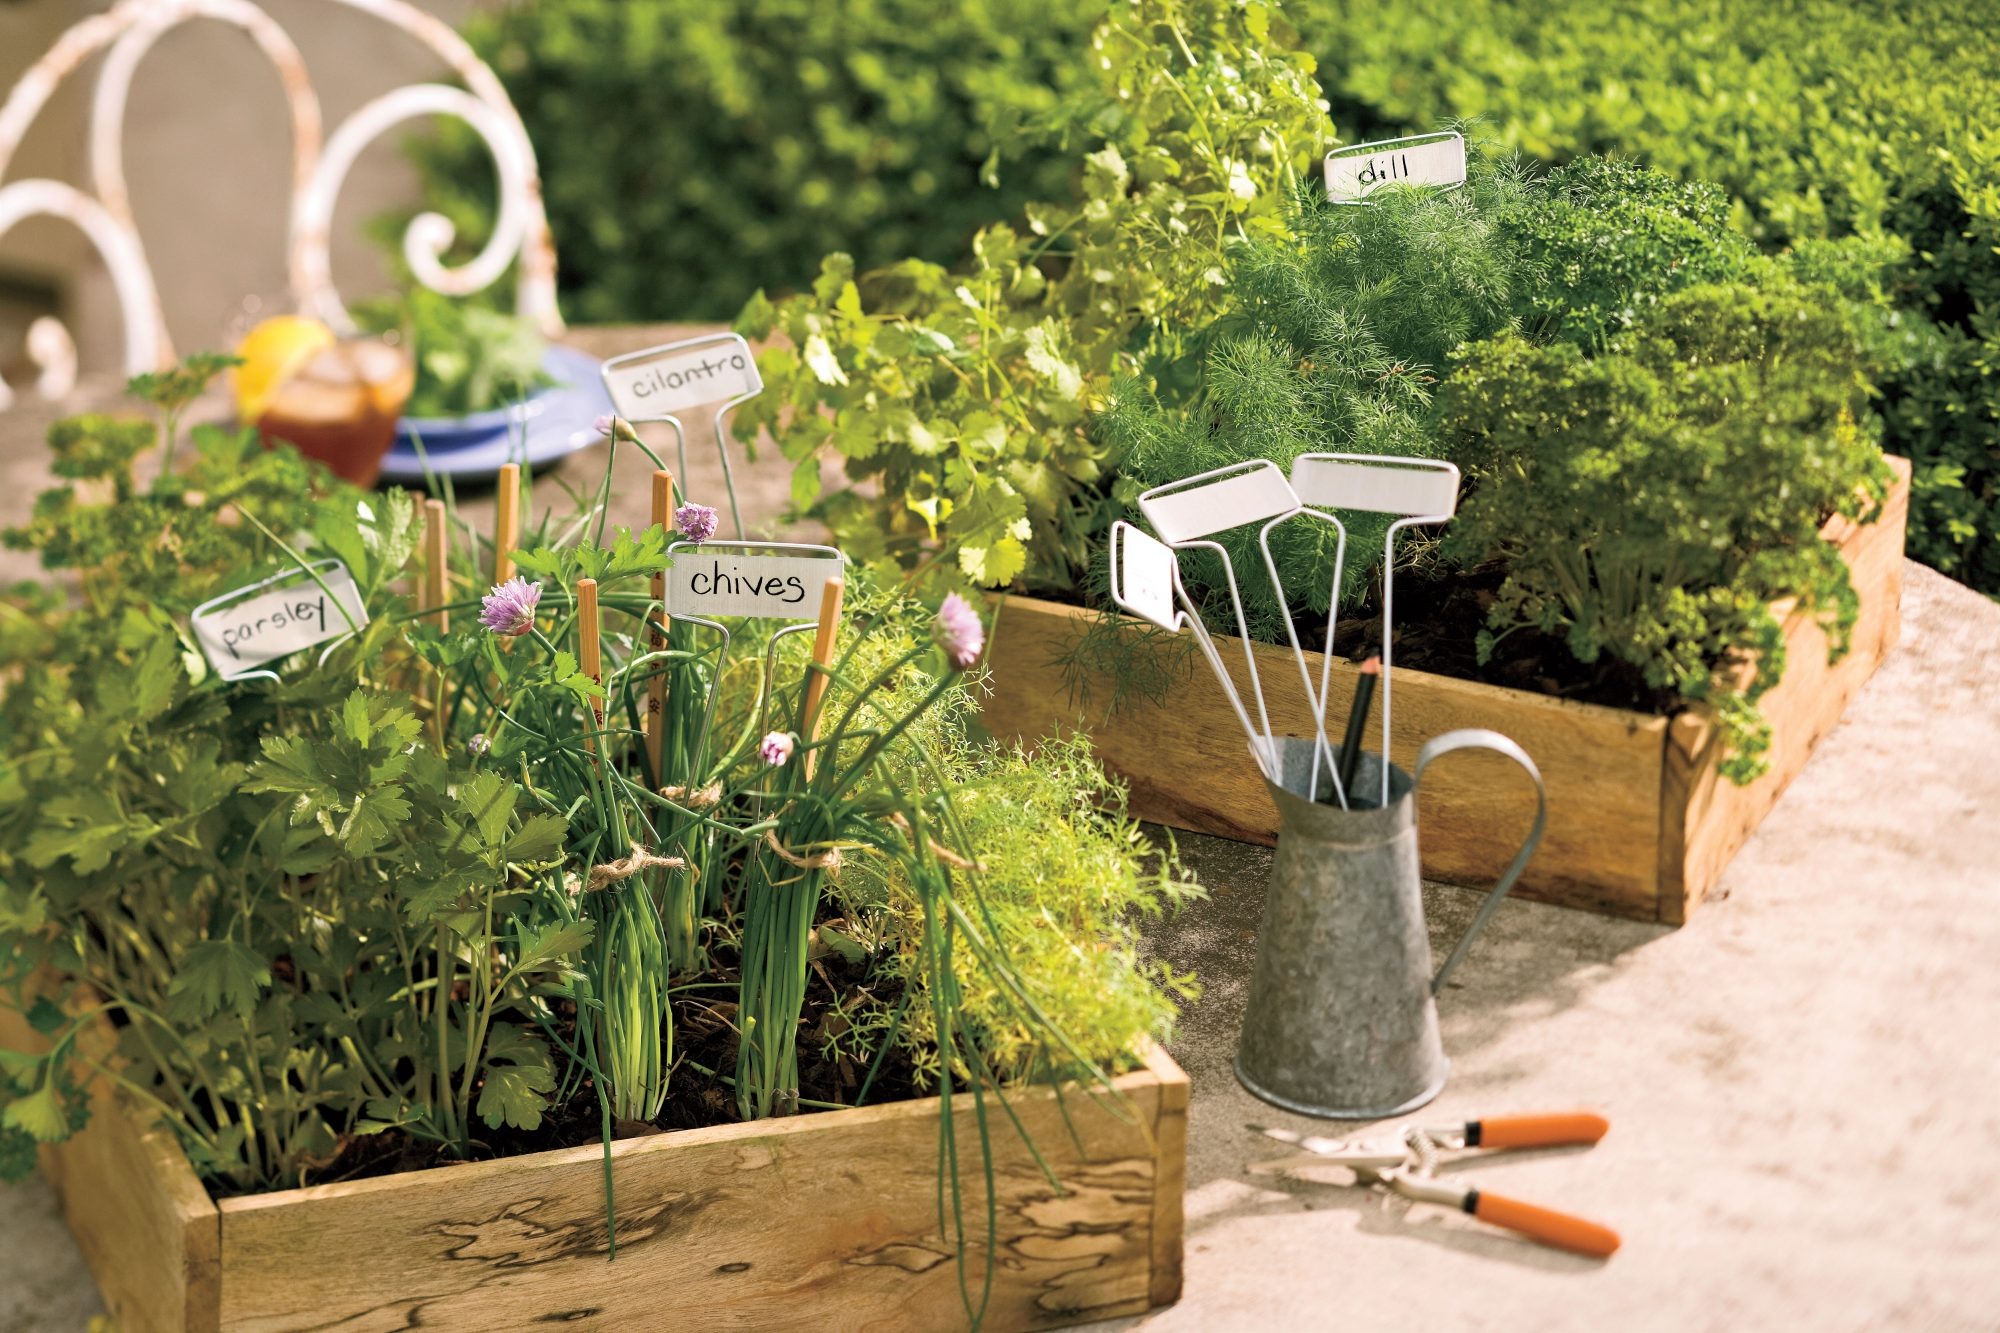 Cilantro, Parsley, and Chives Garden